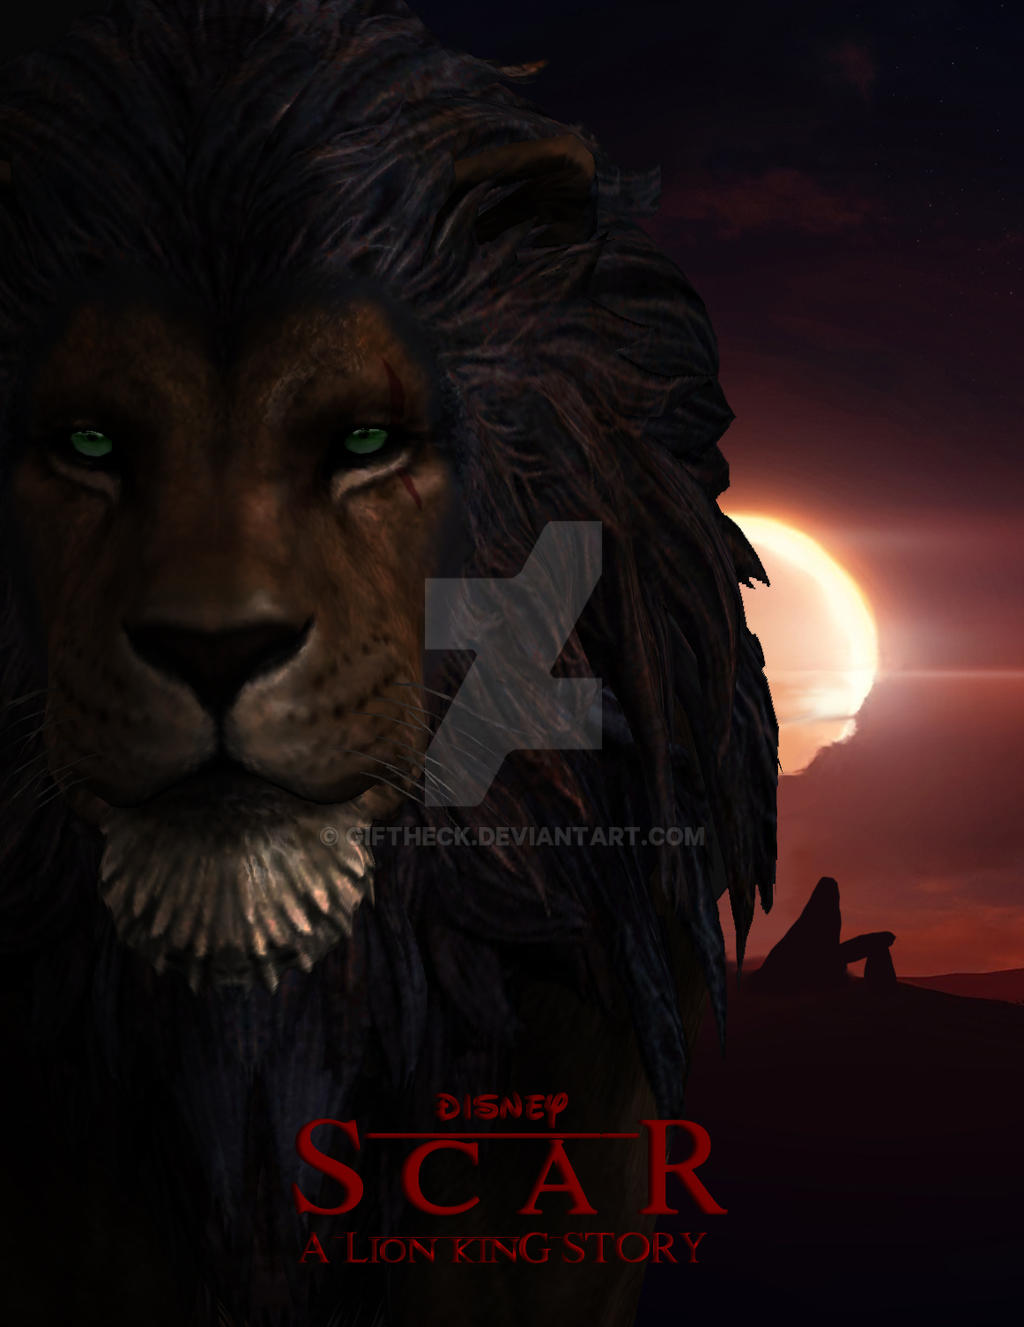 Life of a king movie poster